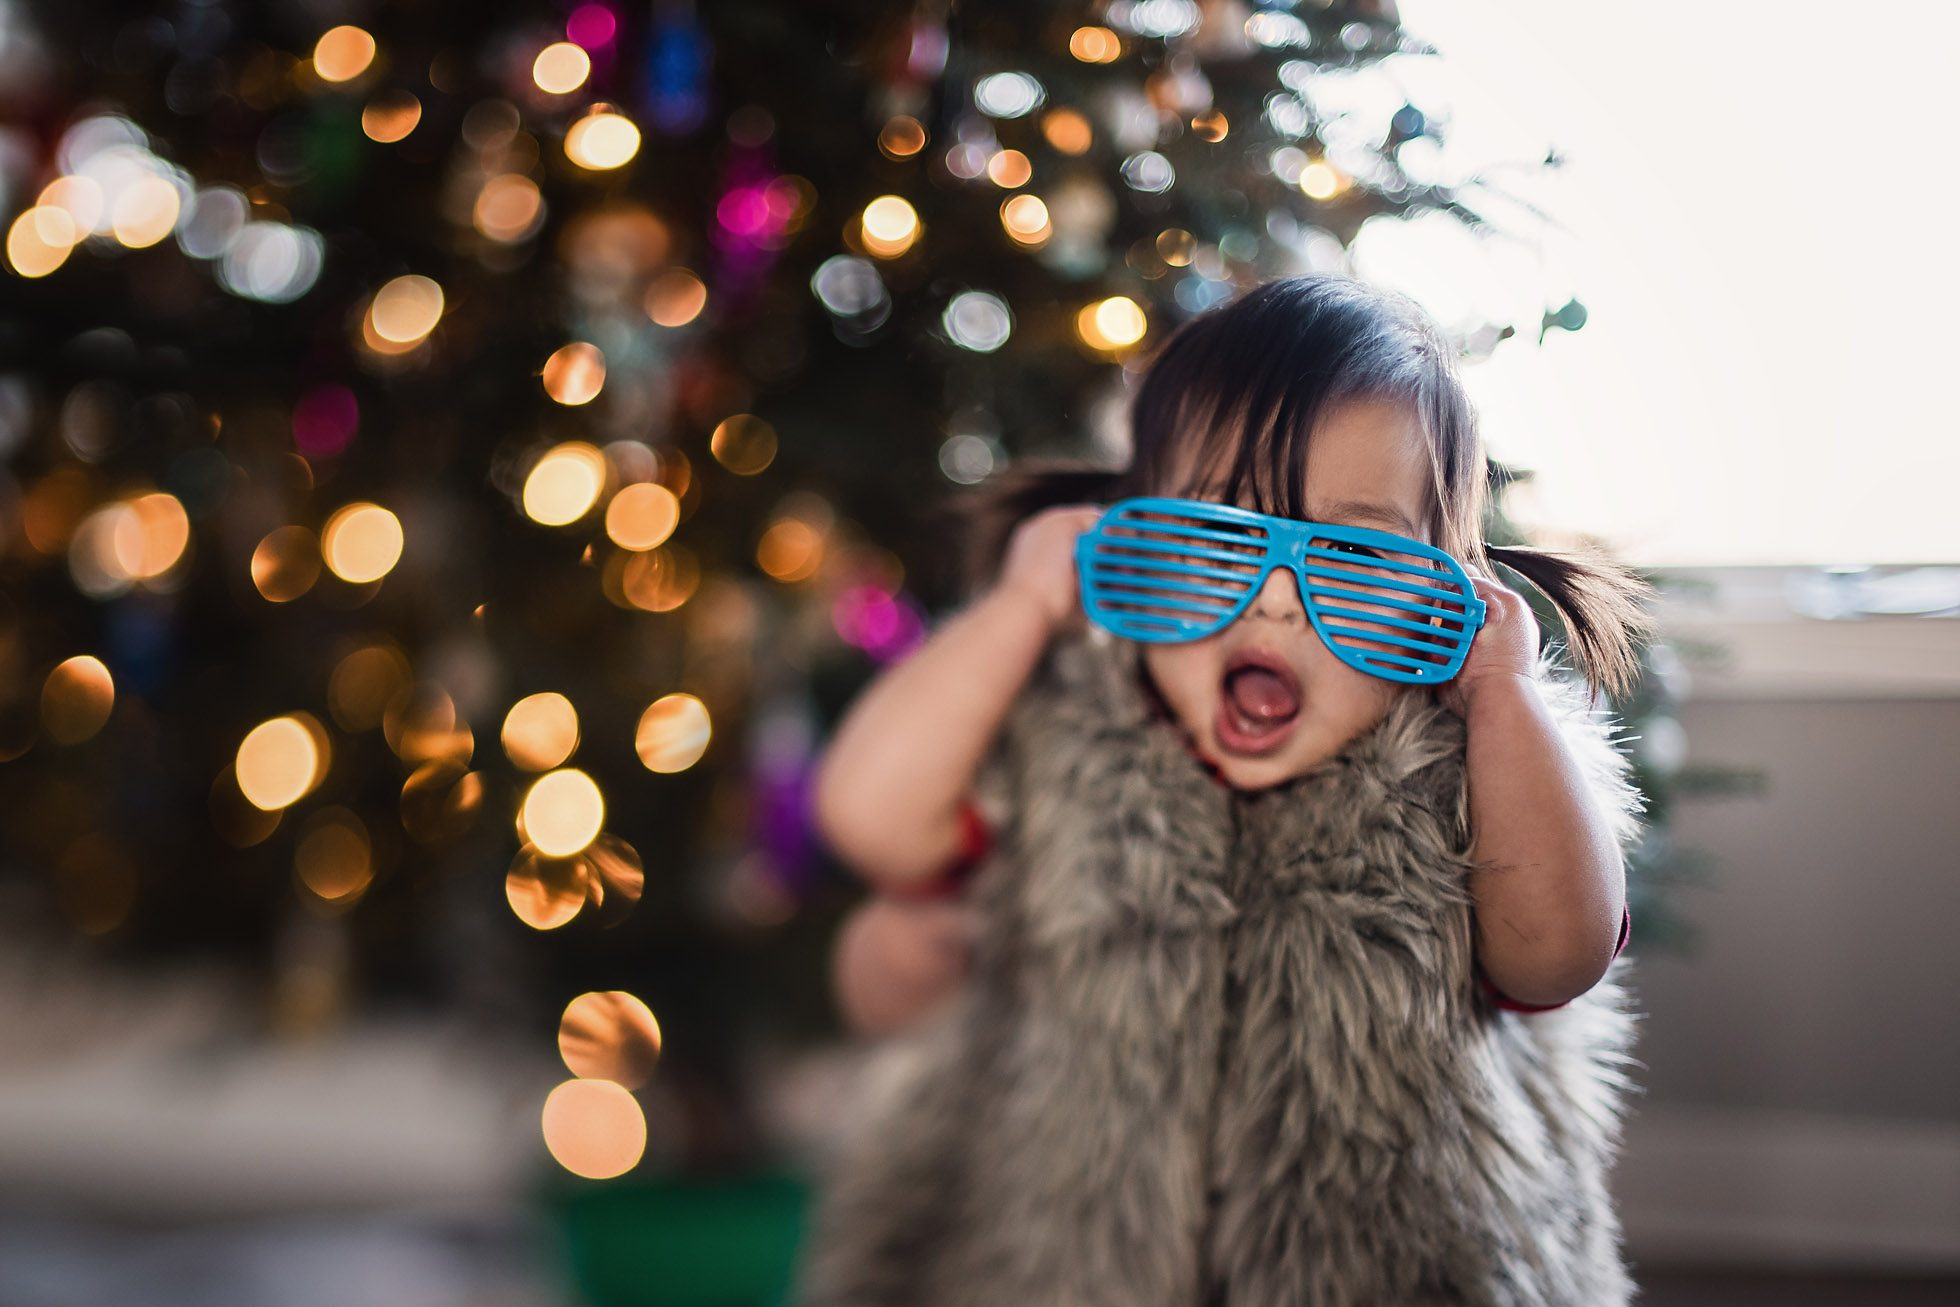 Fur Vest and Retro Shutter Glasses on Toddler Girl, Freelensed Photography by Thao Lai of donthaophotography.com